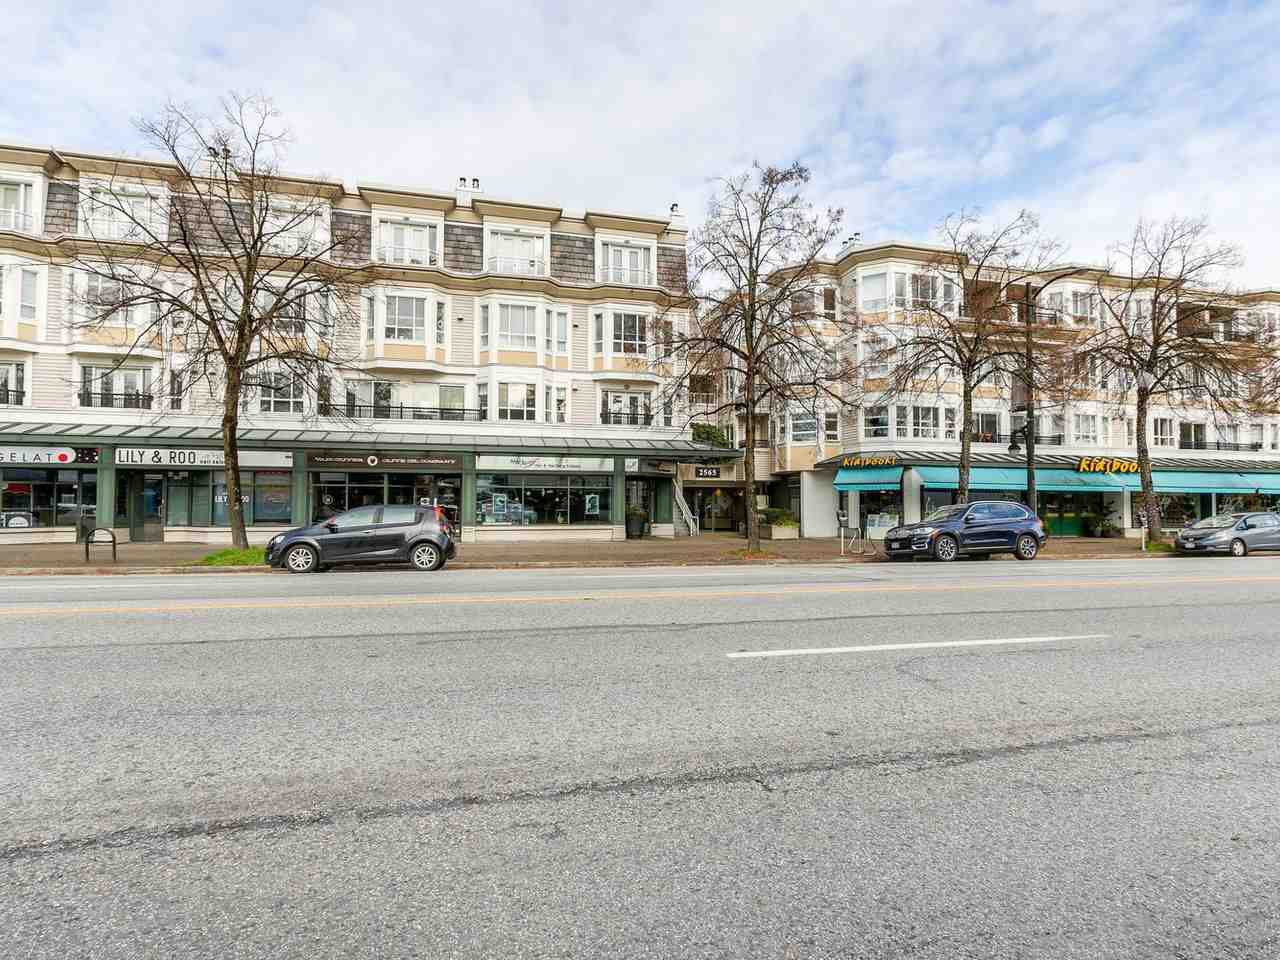 "Main Photo: 252 2565 W BROADWAY in Vancouver: Kitsilano Condo for sale in ""TRAFALGAR MEWS"" (Vancouver West)  : MLS®# R2321224"